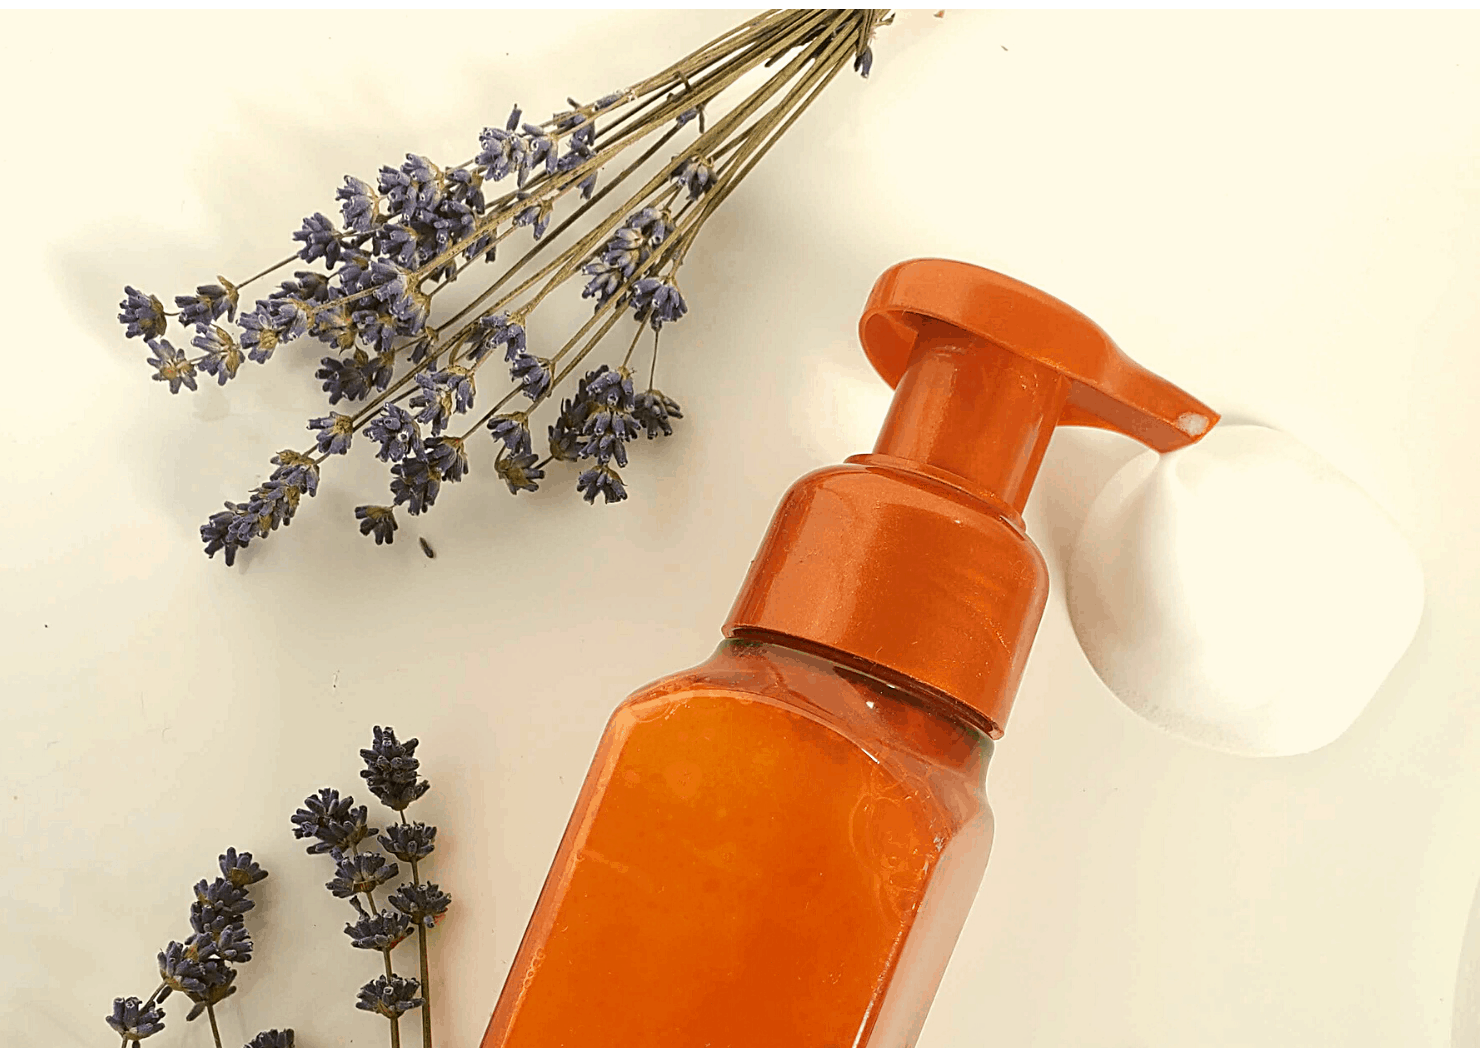 foaming hand soap and lavender